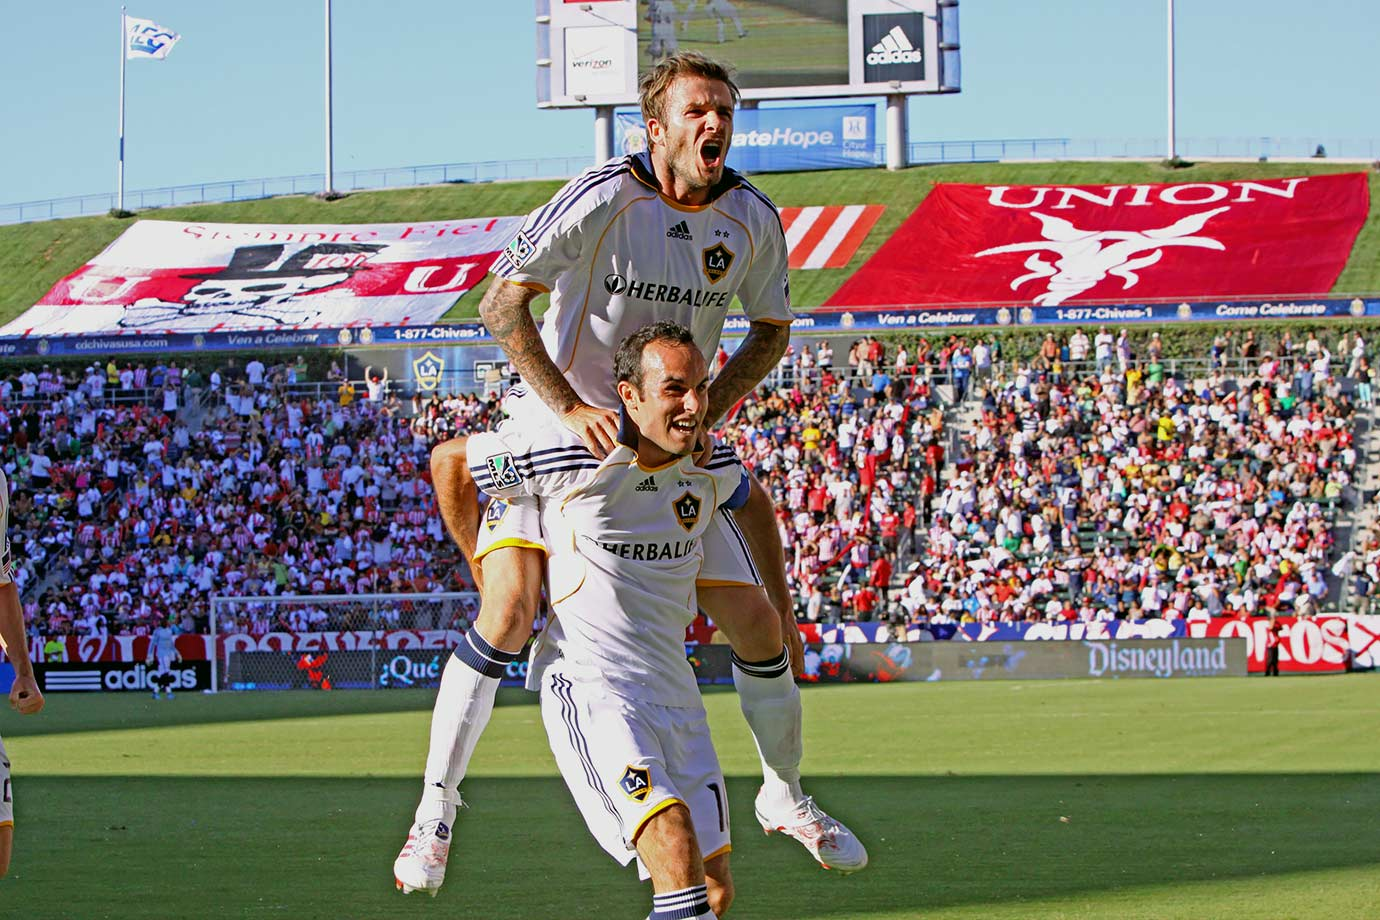 Beckham would have two stints with Milan — one in 2009 and another in 2010 — and received a mixed reaction from fans upon his return to Los Angeles. Both times, however, Beckham led the Galaxy to a Western Conference title.